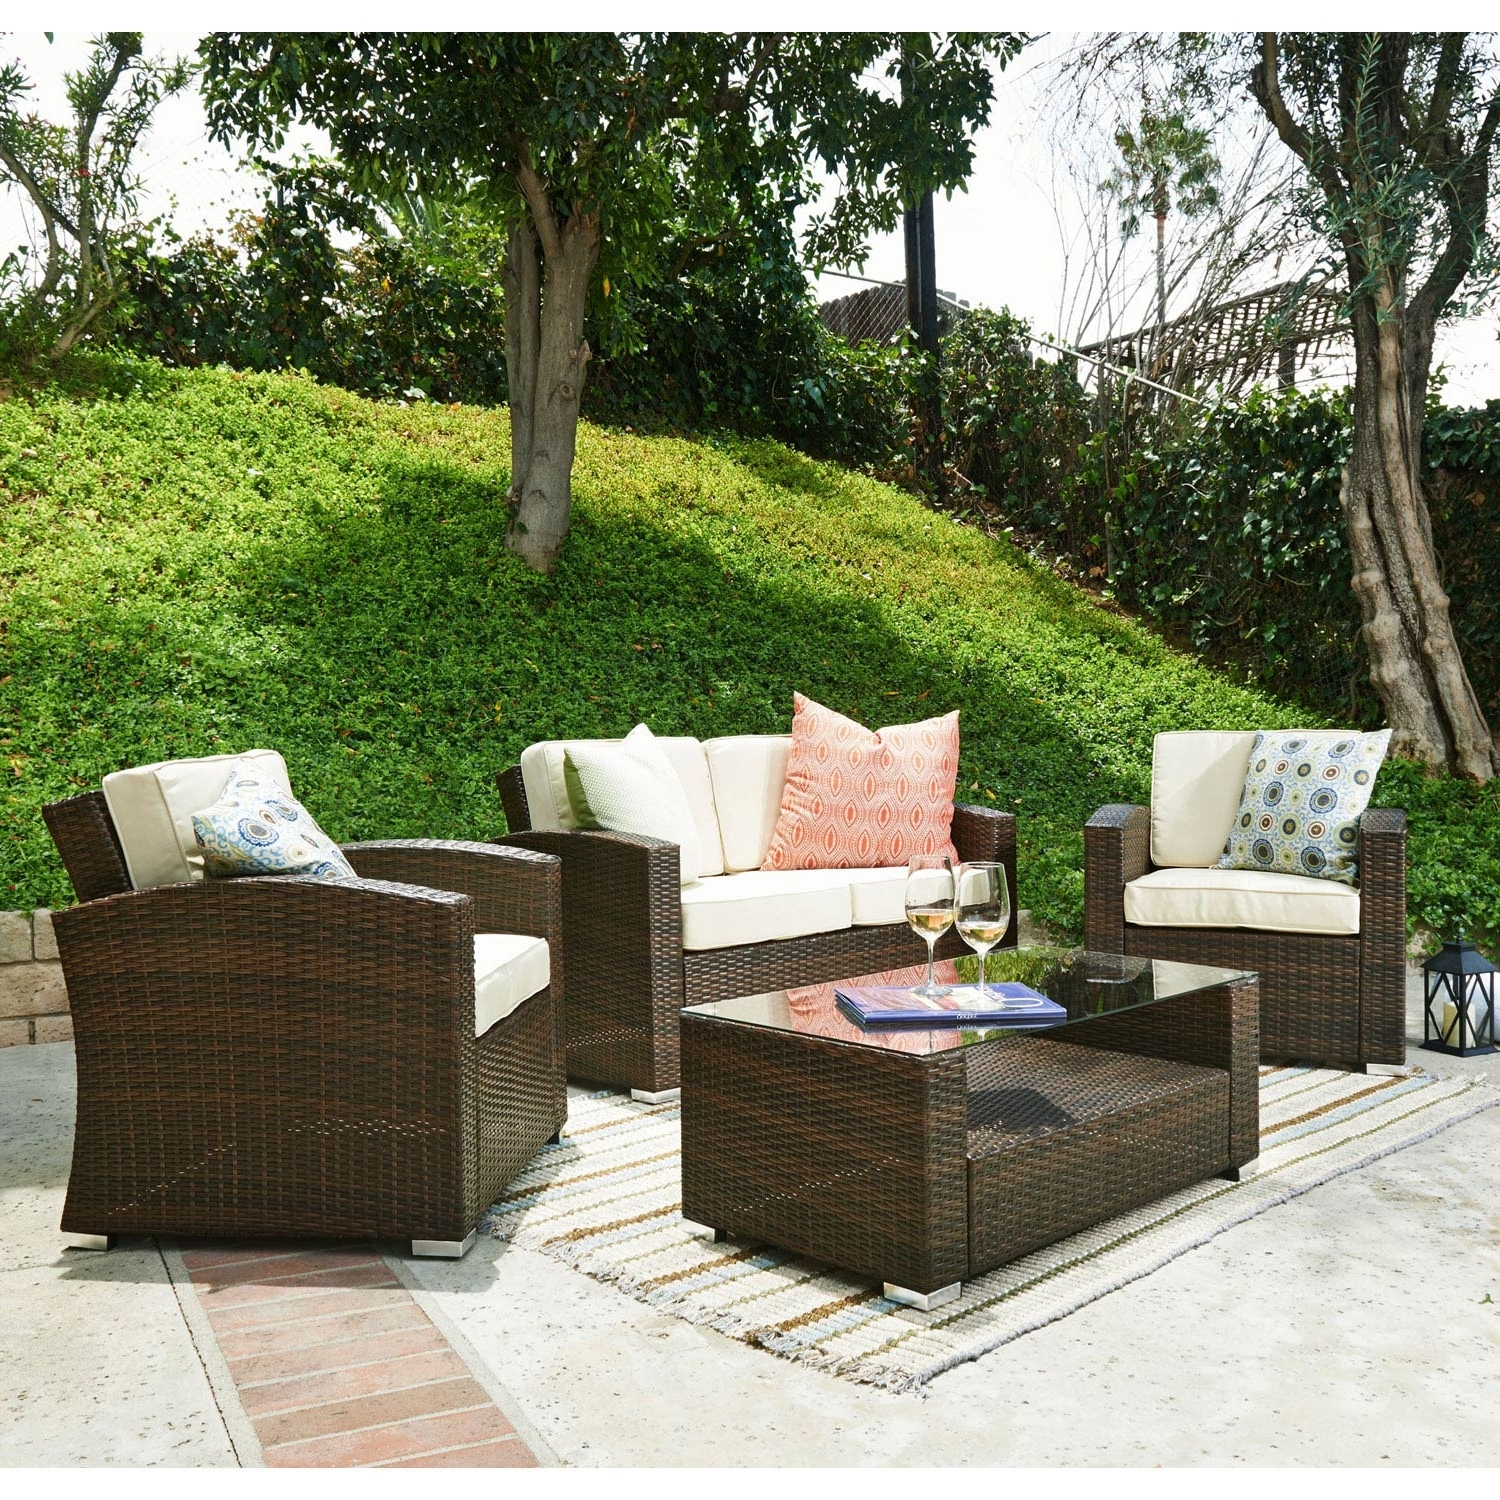 30 Amazing Patio Furniture Conversation Set Ideas Within Most Current Outdoor Patio Furniture Conversation Sets (View 14 of 15)